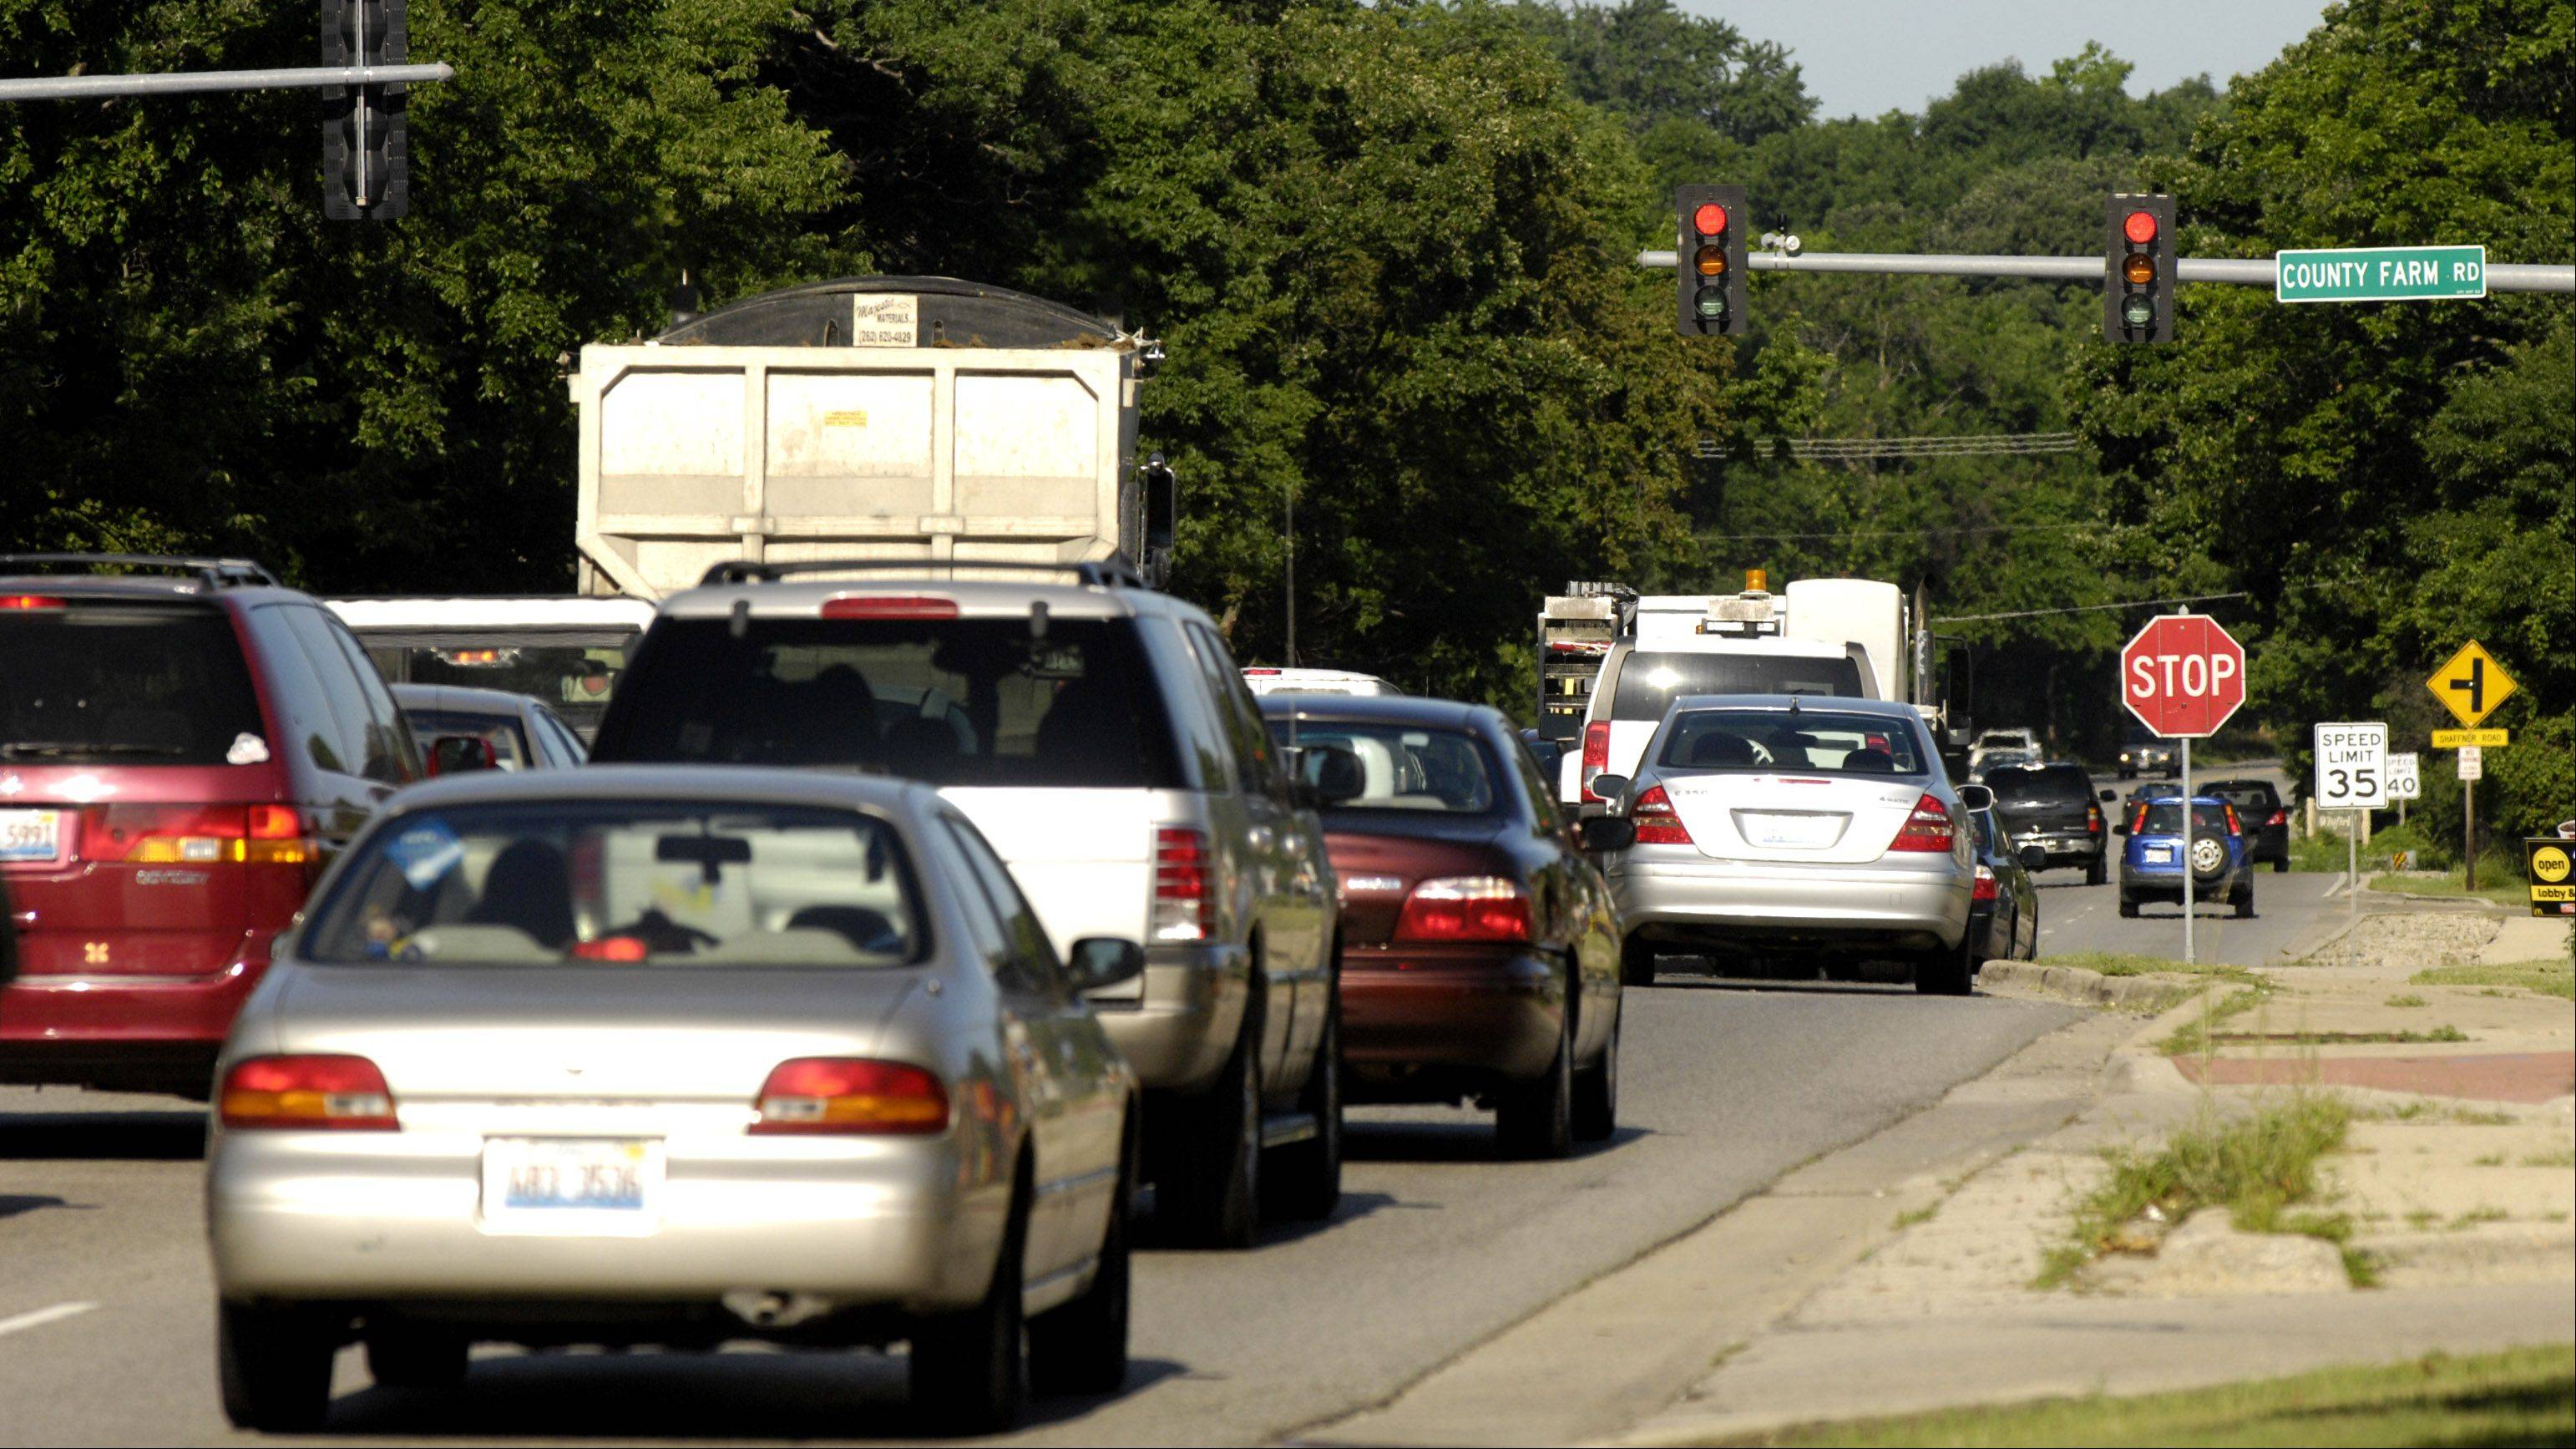 Power outages at the intersection of Route 38 and County Farm Road in Wheaton has affected the traffic lights, causing traffic backups.